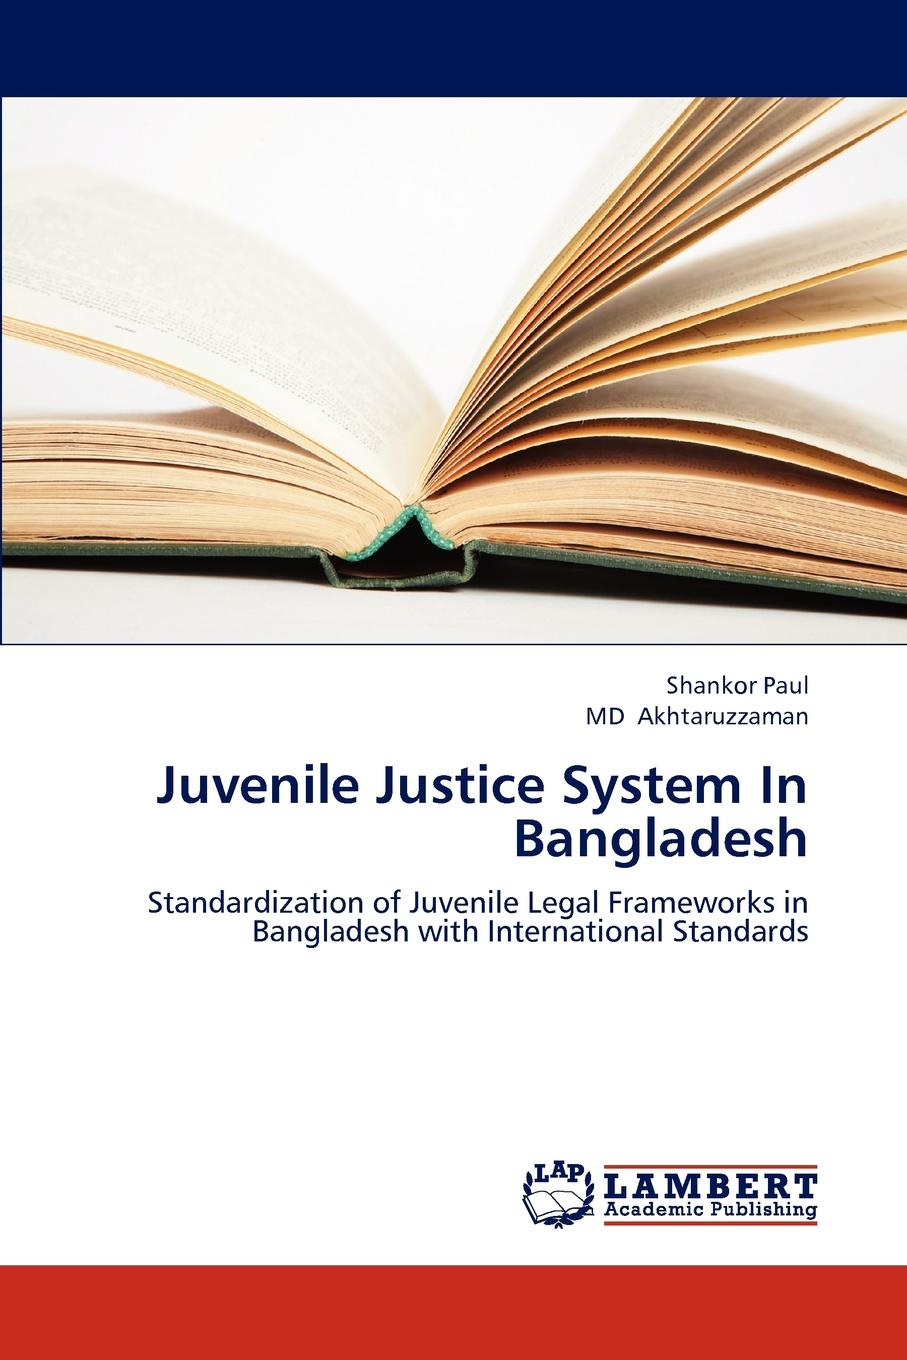 Paul Shankor, Akhtaruzzaman MD Juvenile Justice System in Bangladesh mahmudul hasan review of the current legal and institutional mechanisms in relation to the environment pollution control in bangladesh